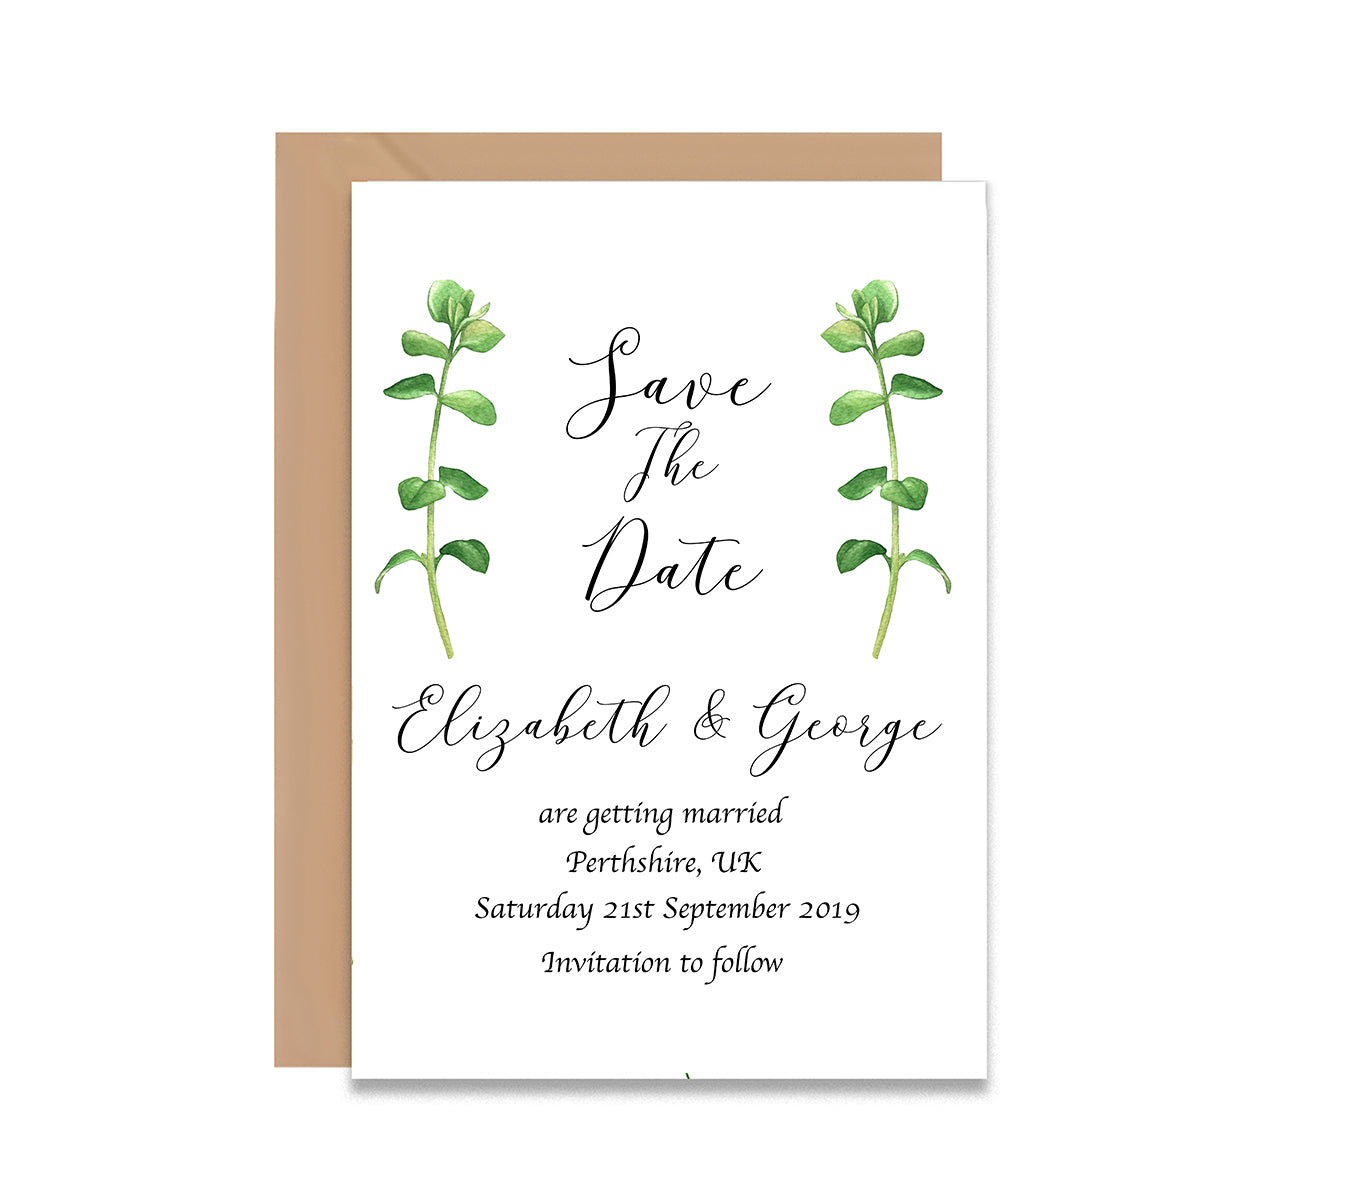 Eucalpytus Save The Date Wedding Card-Wedding Stationary-Mode Prints